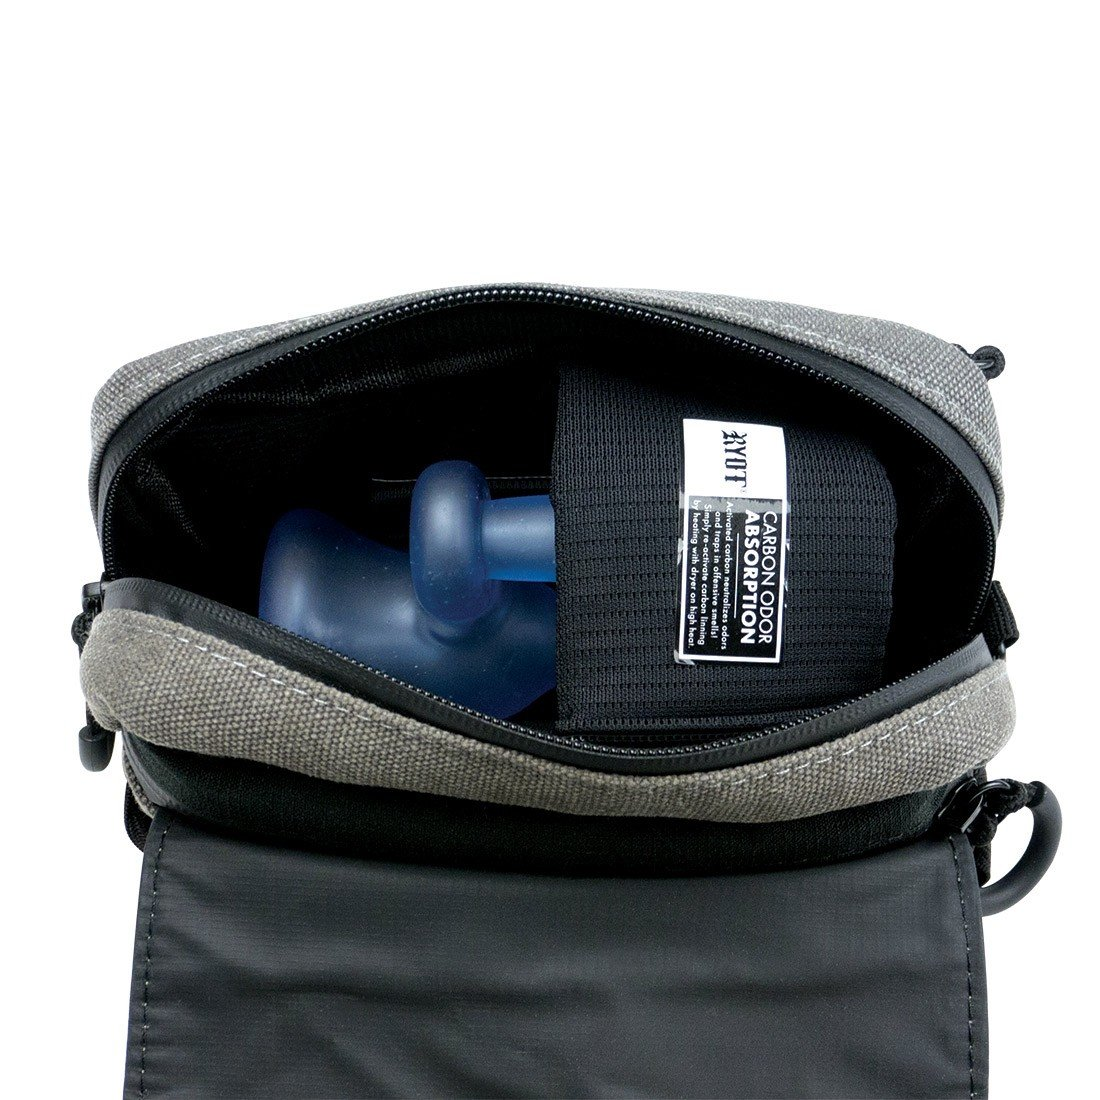 be44c5e94c01 Lockable Piper Carbon Series Bag with Odor Protection, Gray